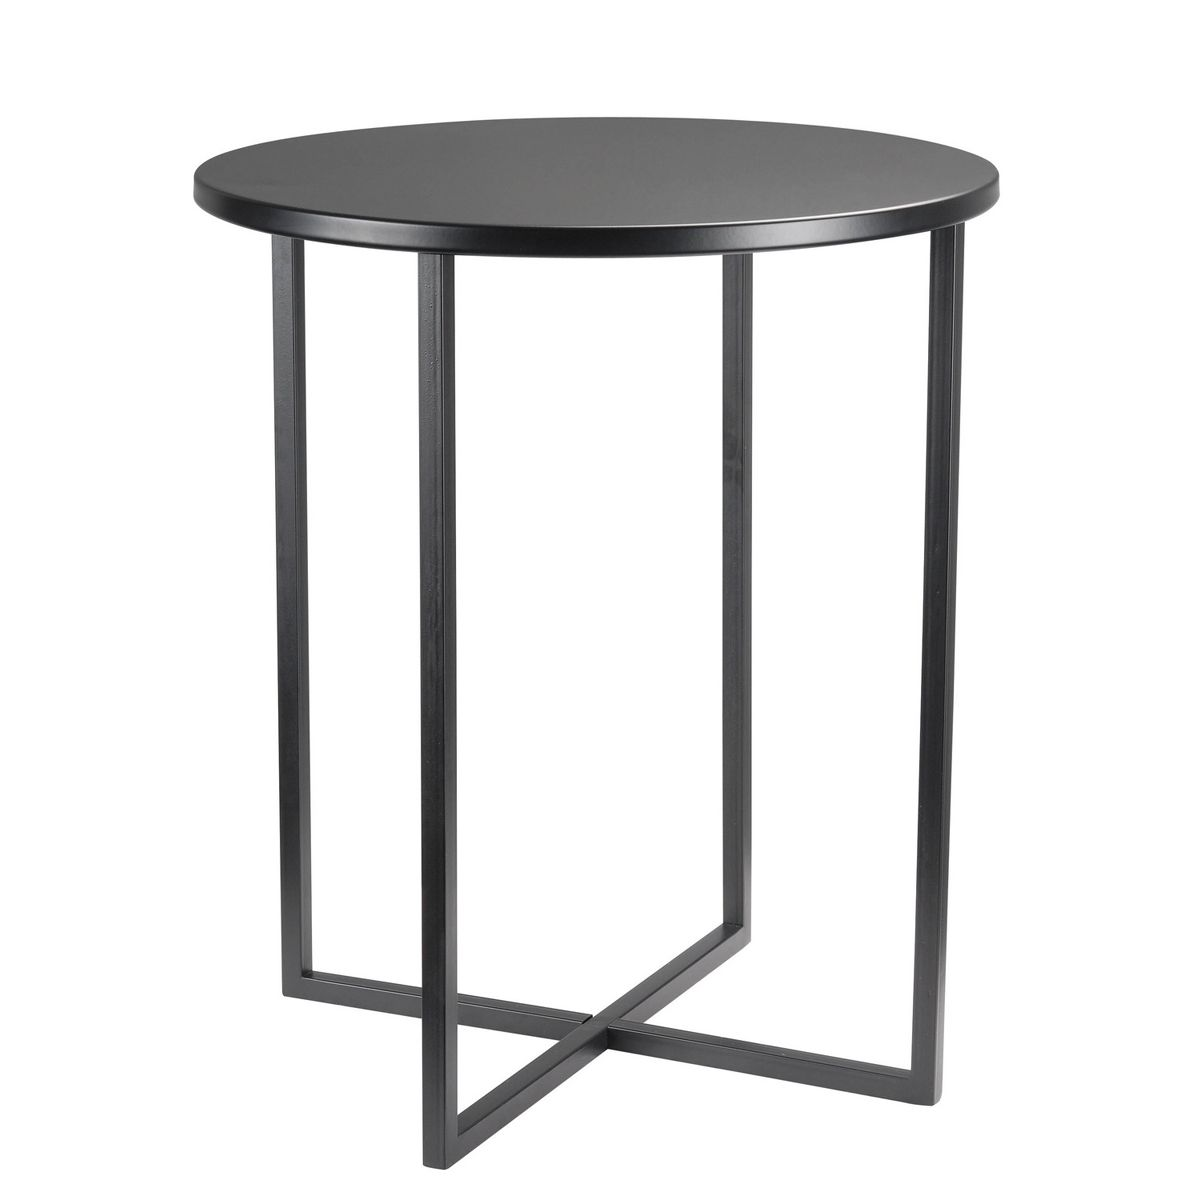 kenroy lighting aria accent table oil rubbed bronze dining area furniture pub garden bar ideas ikea storage units grey set wood coffee threshold modern legs outdoor patio corner